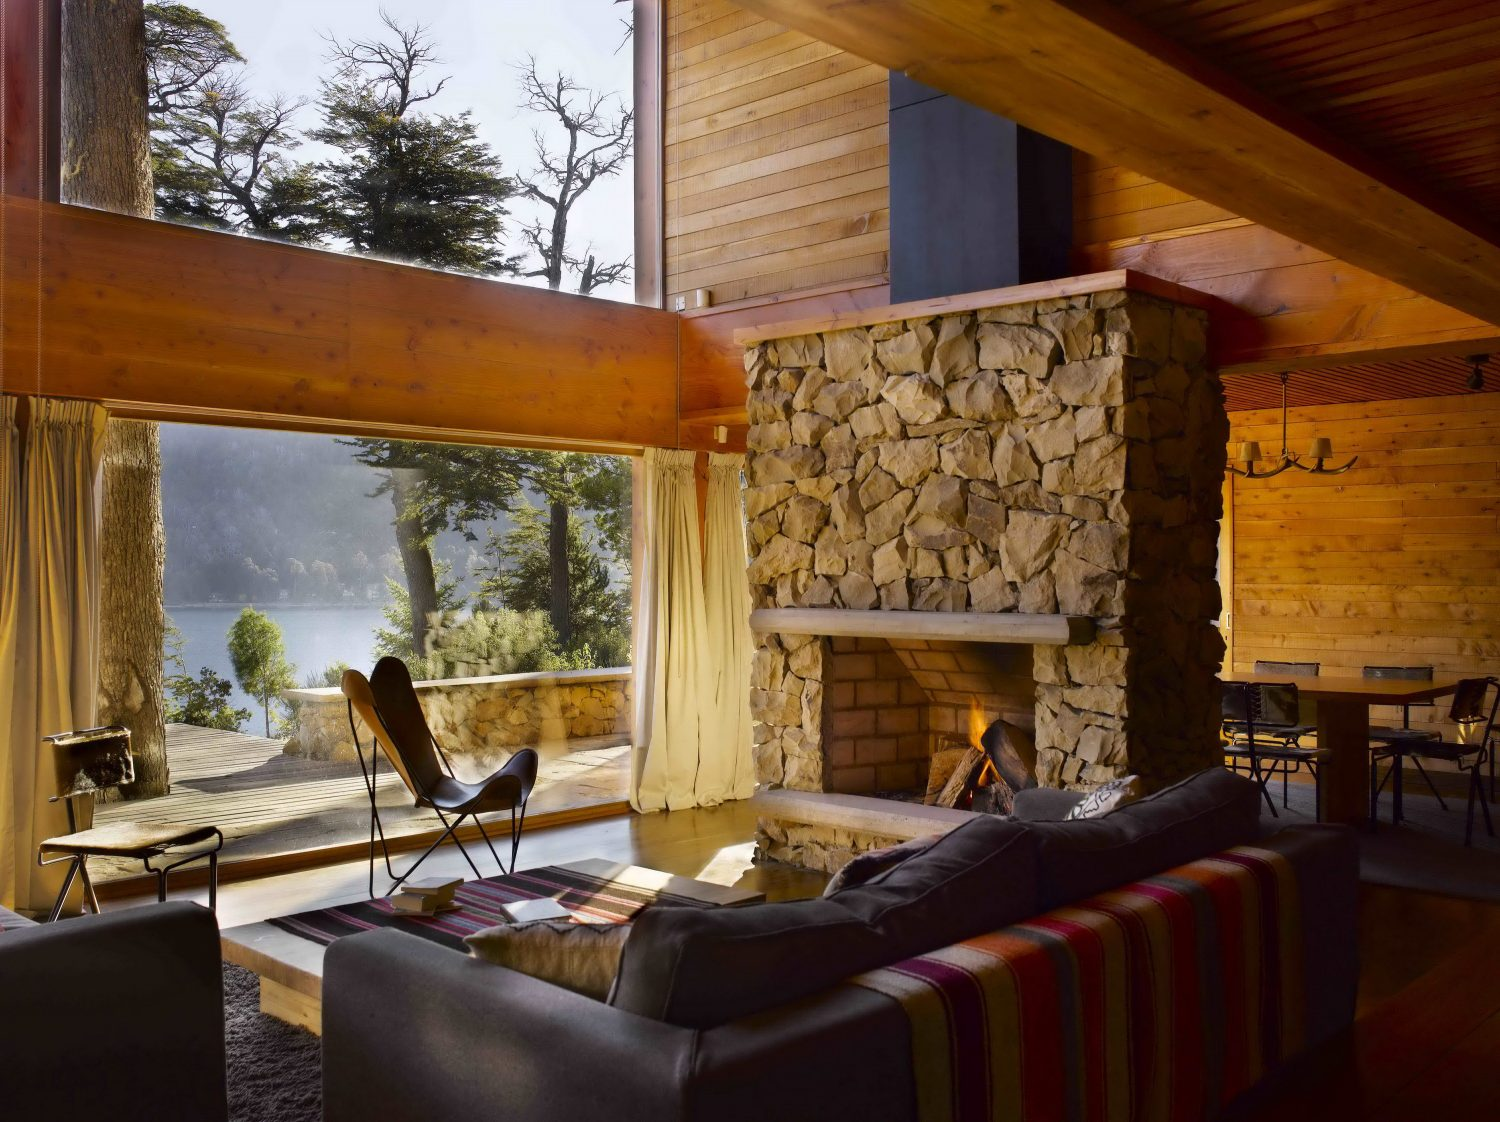 House in Patagonia by Estudio Ramos